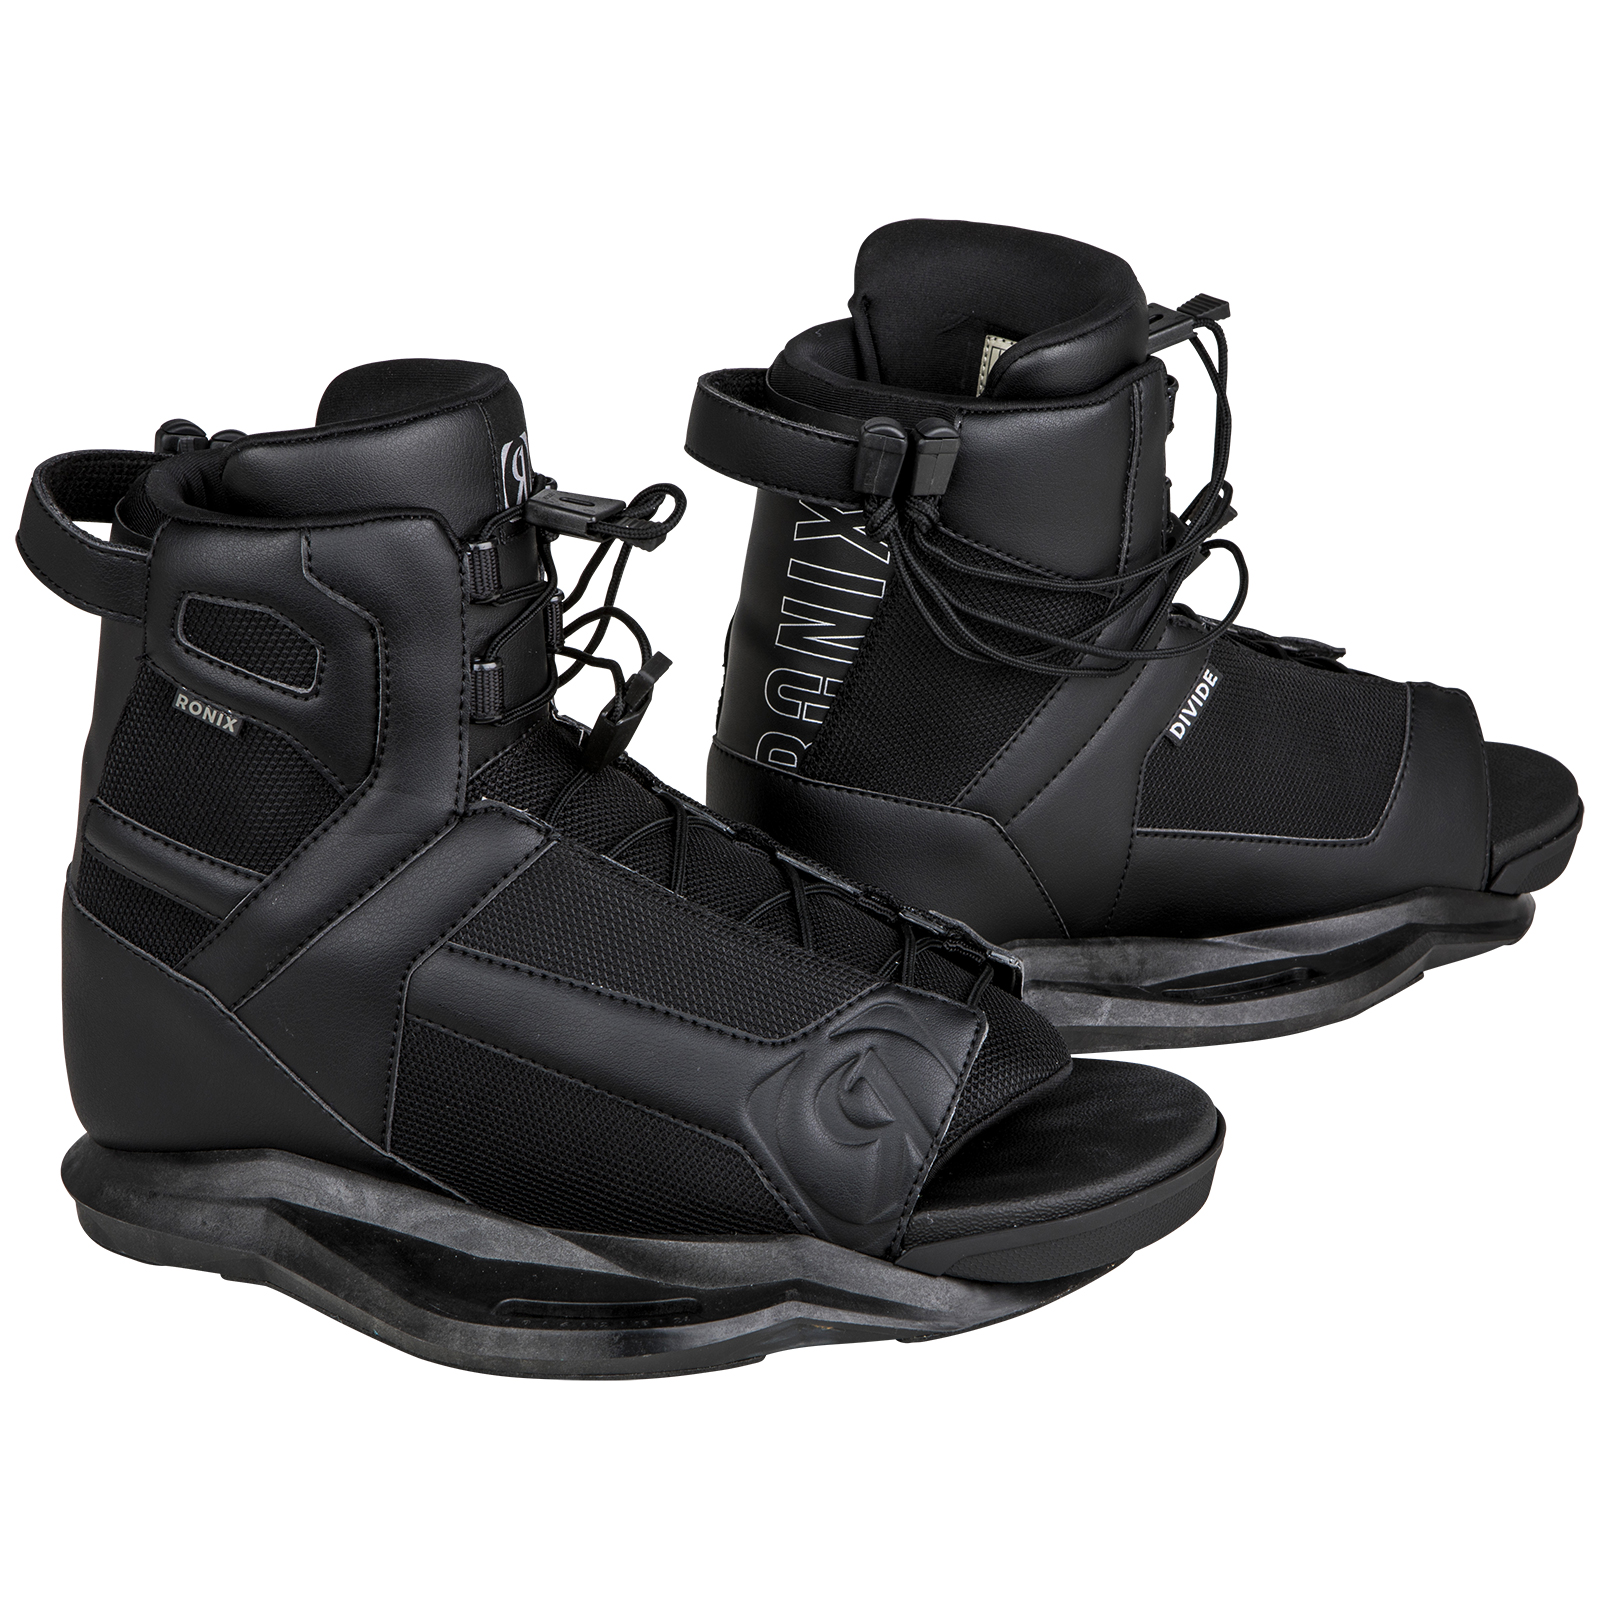 DIVIDE - BLACK BOOT RONIX 2019